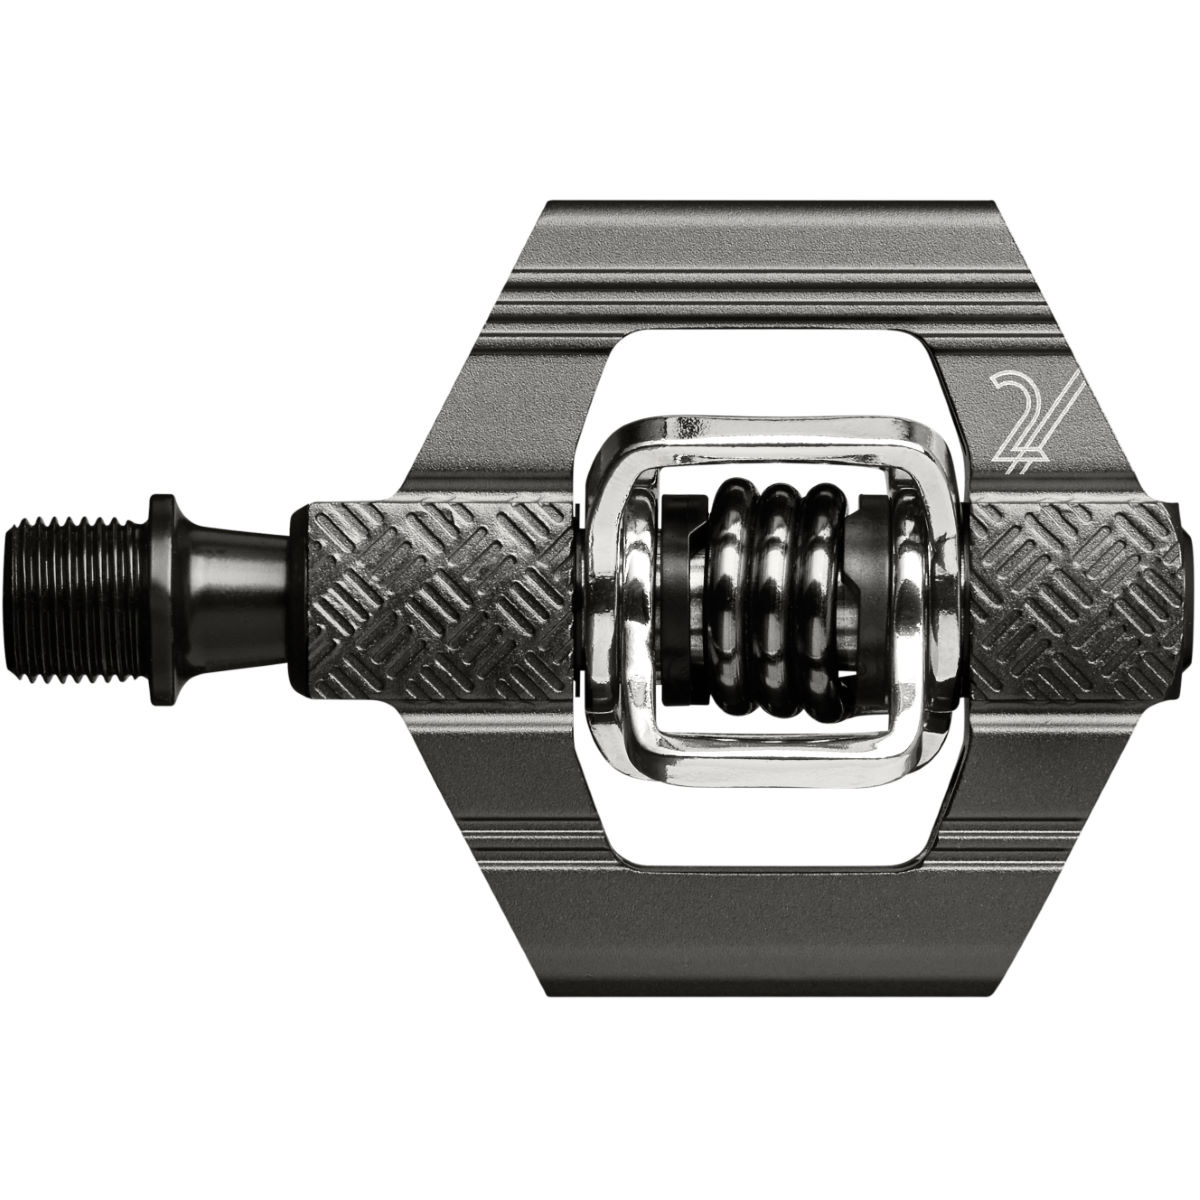 Crank Brothers Candy 2 Clipless MTB Pedals - Pedales automáticos